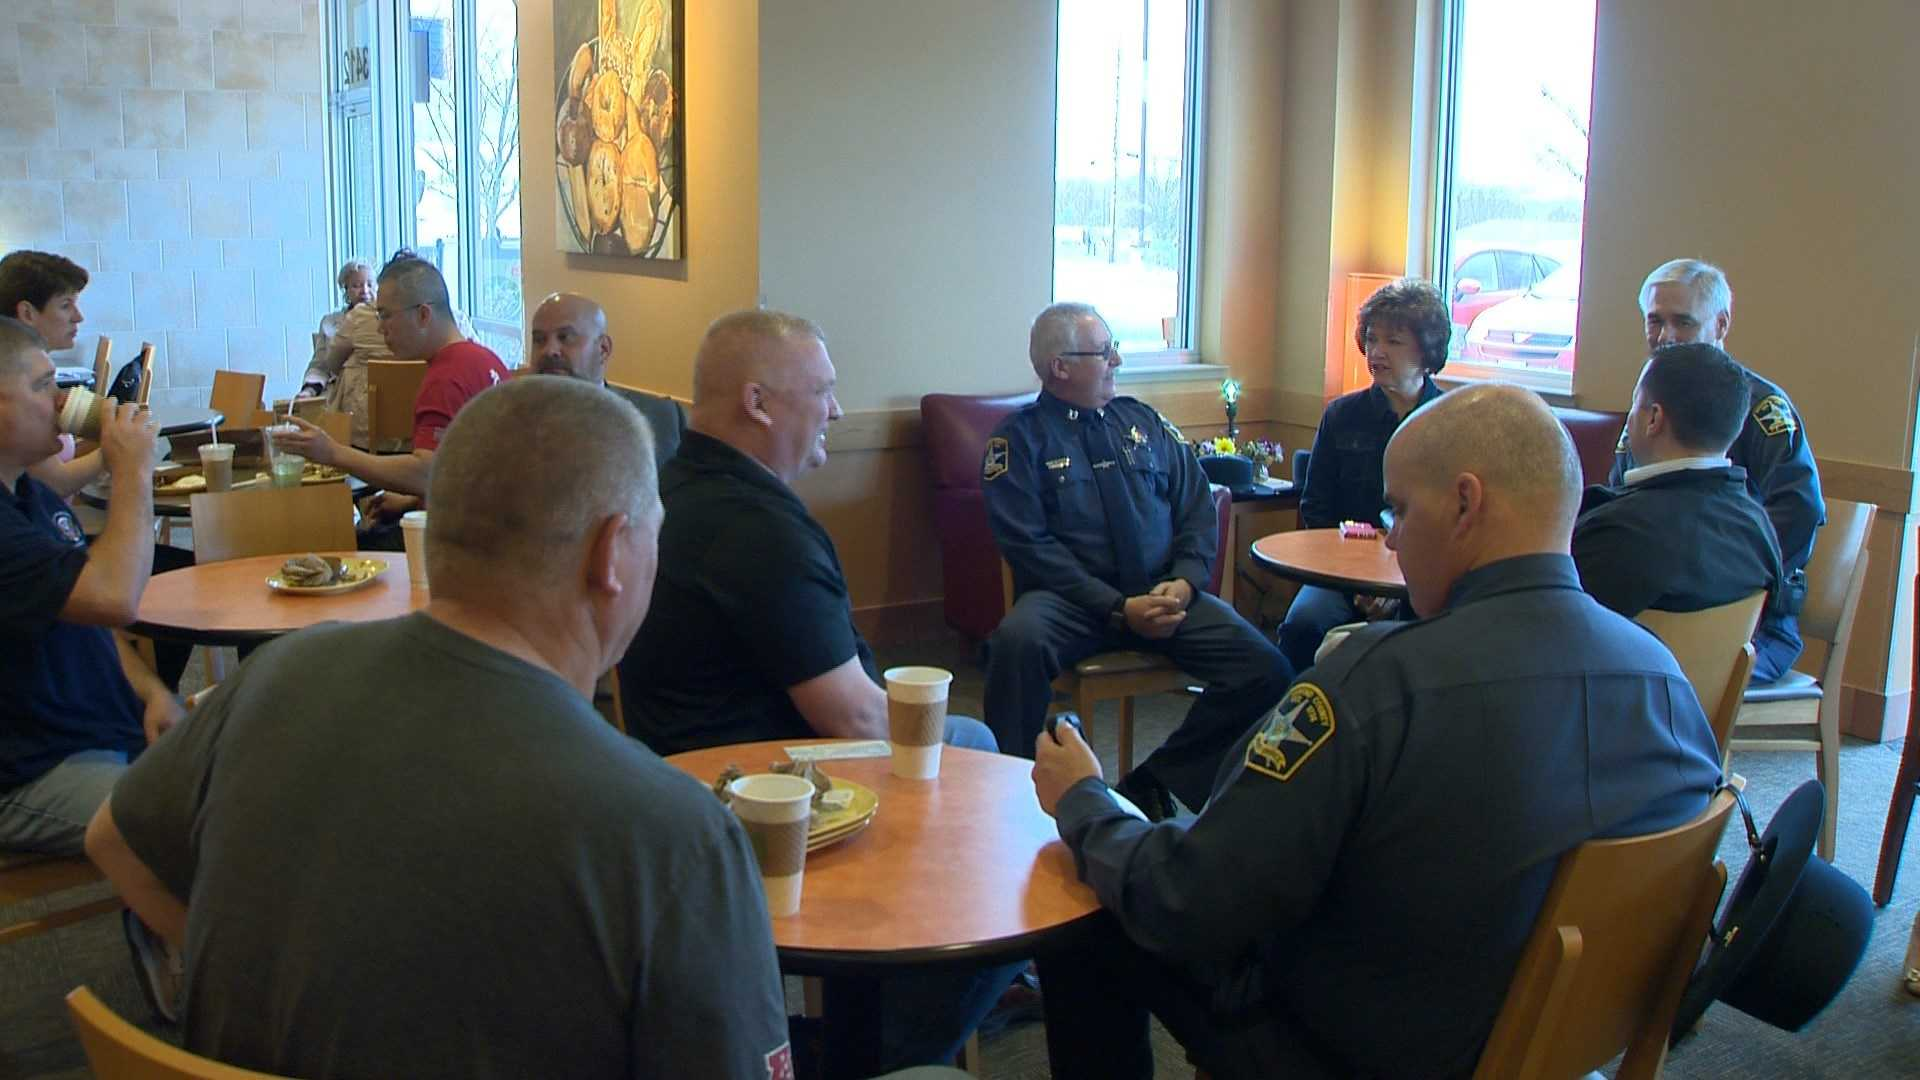 The Panera Bread in Abingdon will donate 100 percent of its sales from this weekend to the Harford County Deputy Sheriff Benevolent Fund. The gesture is in tribute to Harford County Sheriff's Office Senior Deputy Patrick Dailey and Deputy First Class Mark Logsdon who were killed in the line of duty on Feb. 10, 2016.